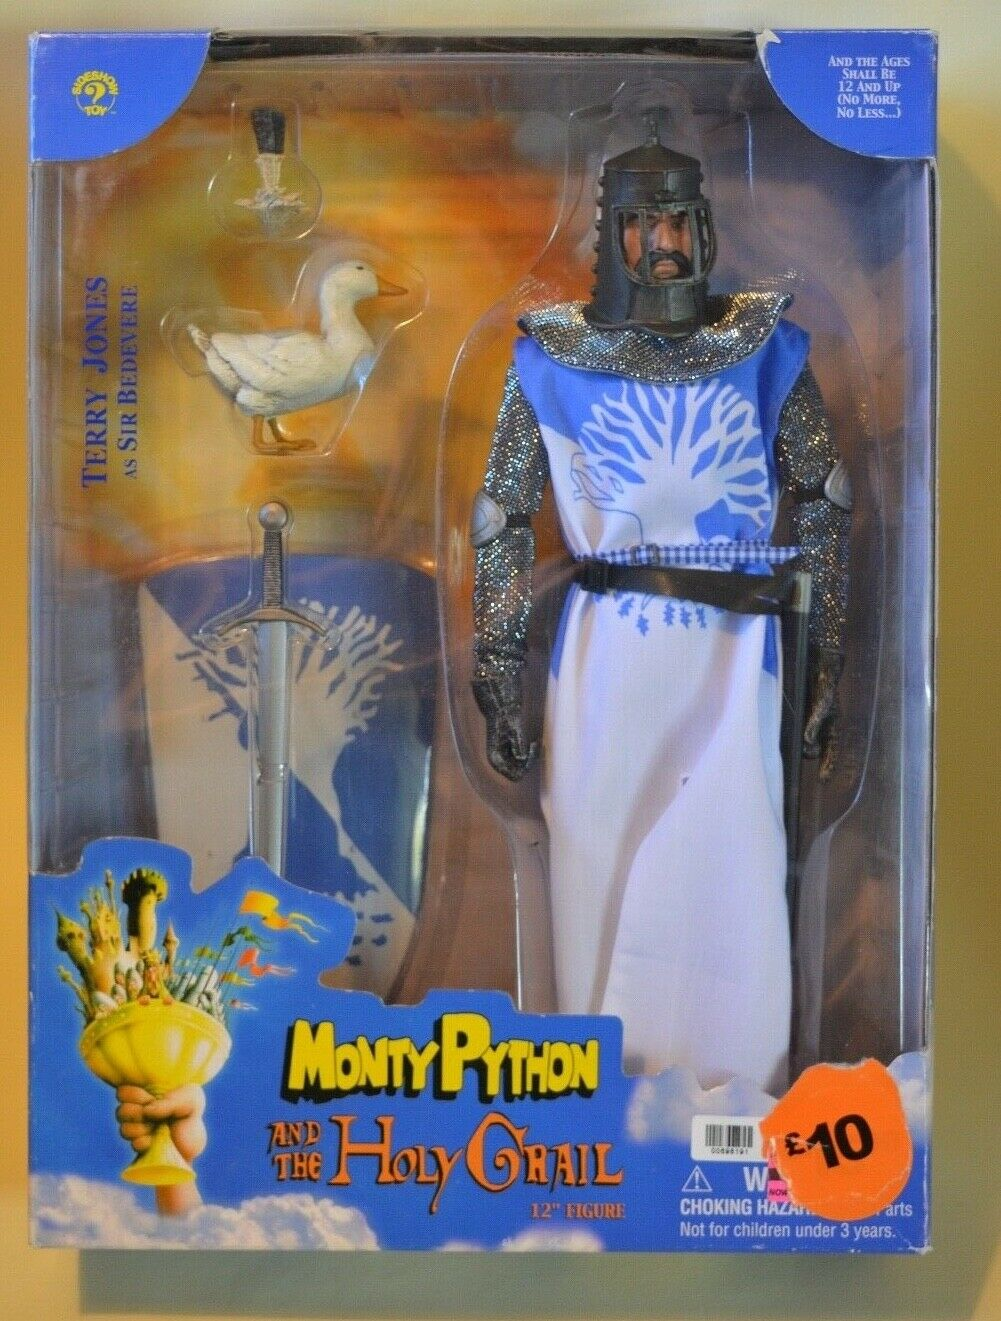 SIDESHOW MONTY PYTHON & THE HOLY GRAIL 1 6 scale Terry Jones SIR BEDEVERE 2001